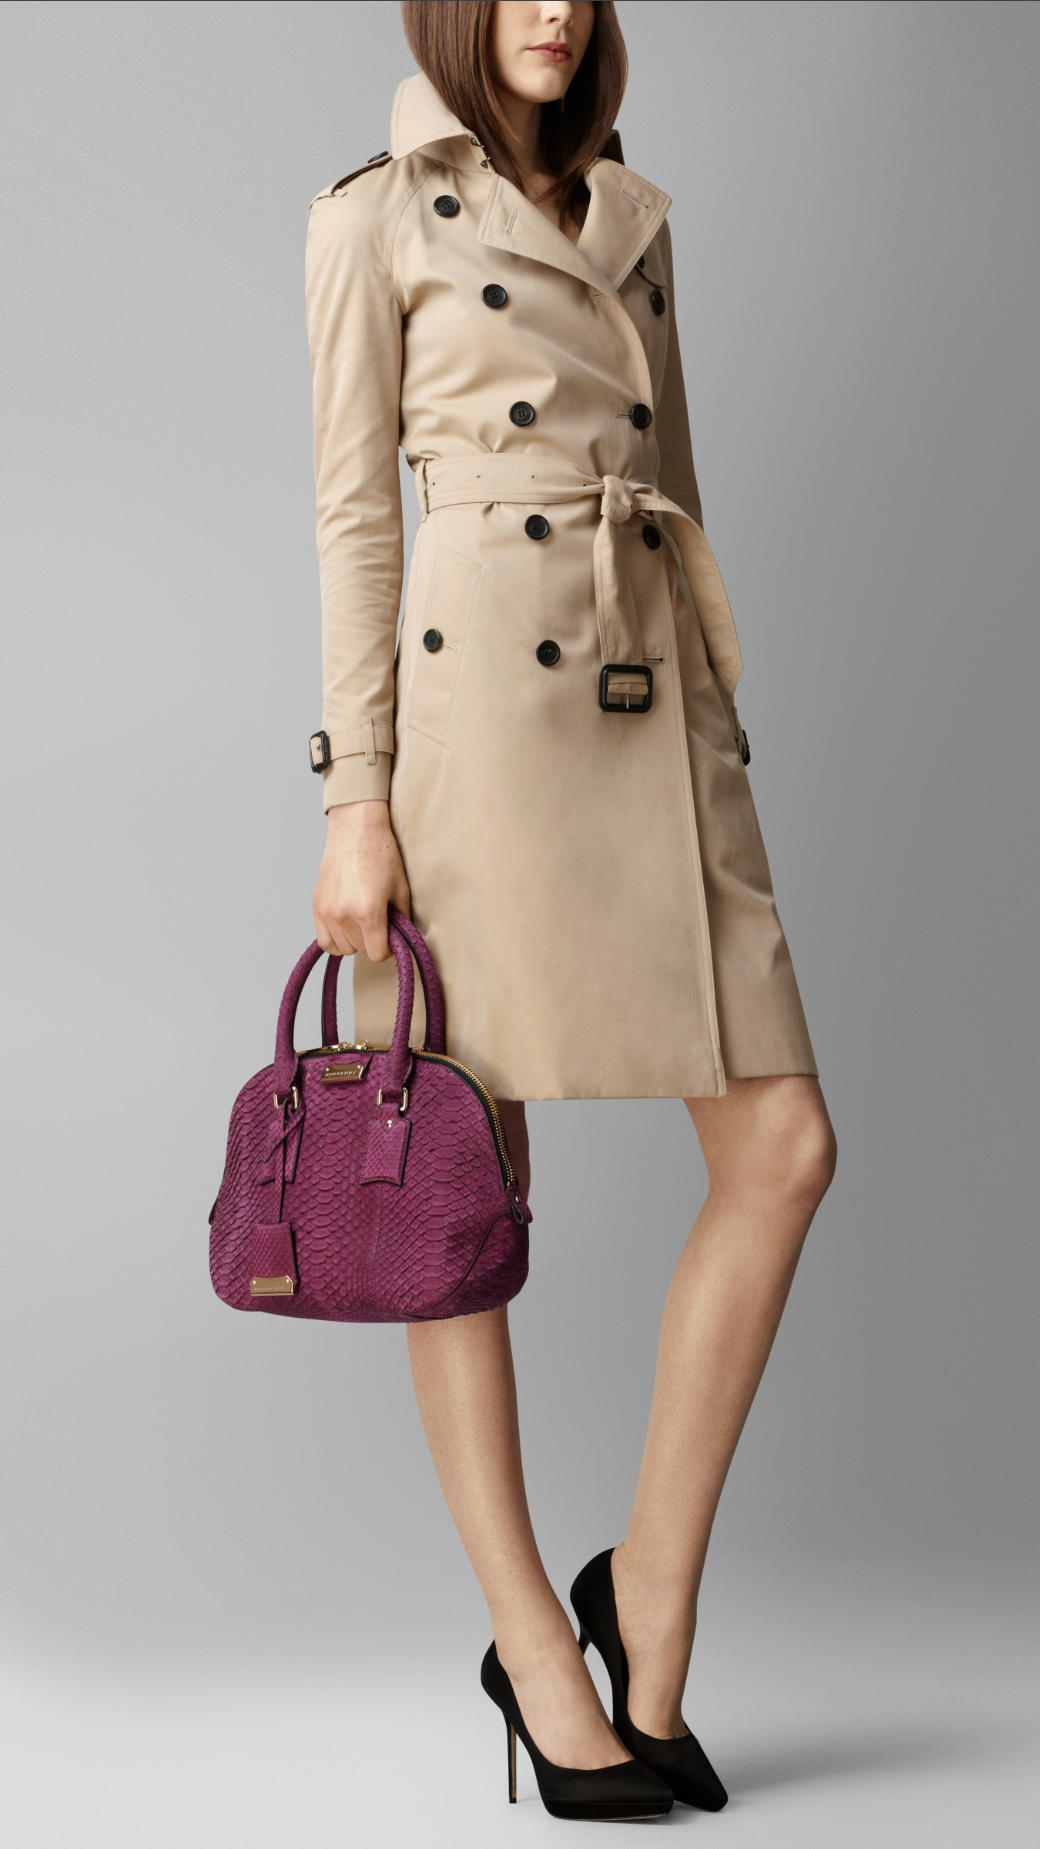 Sac de luxe Burberry The Orchard en python nubuck